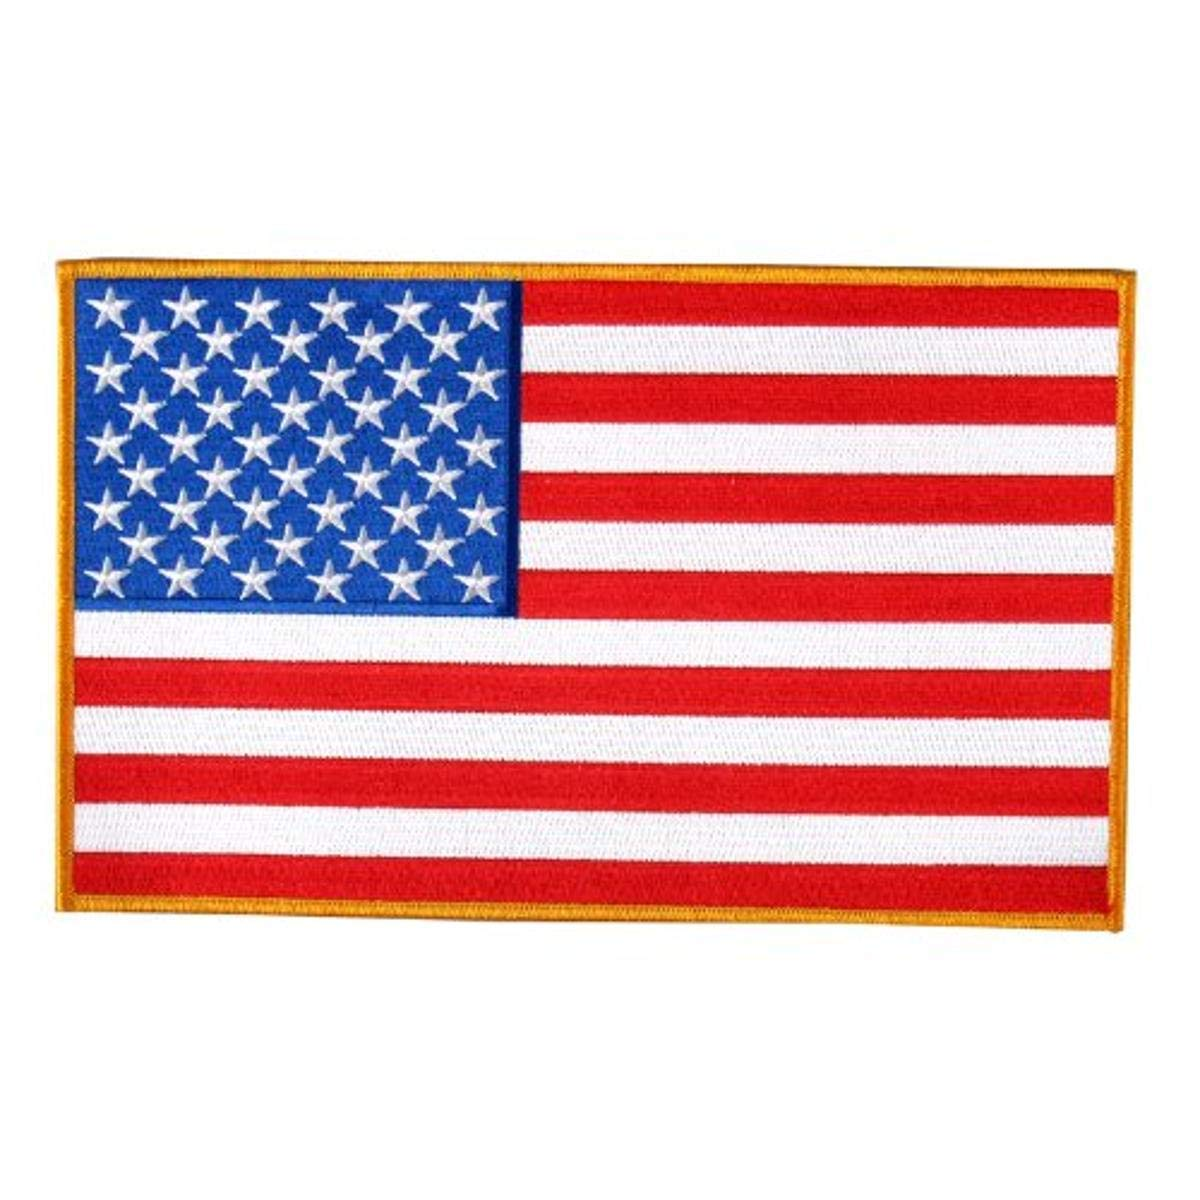 Hot Leathers PPA1222 Amerikanische Flagge Patch (12,7 cm breit x 7,6 cm hoch), rot von Hot Leathers